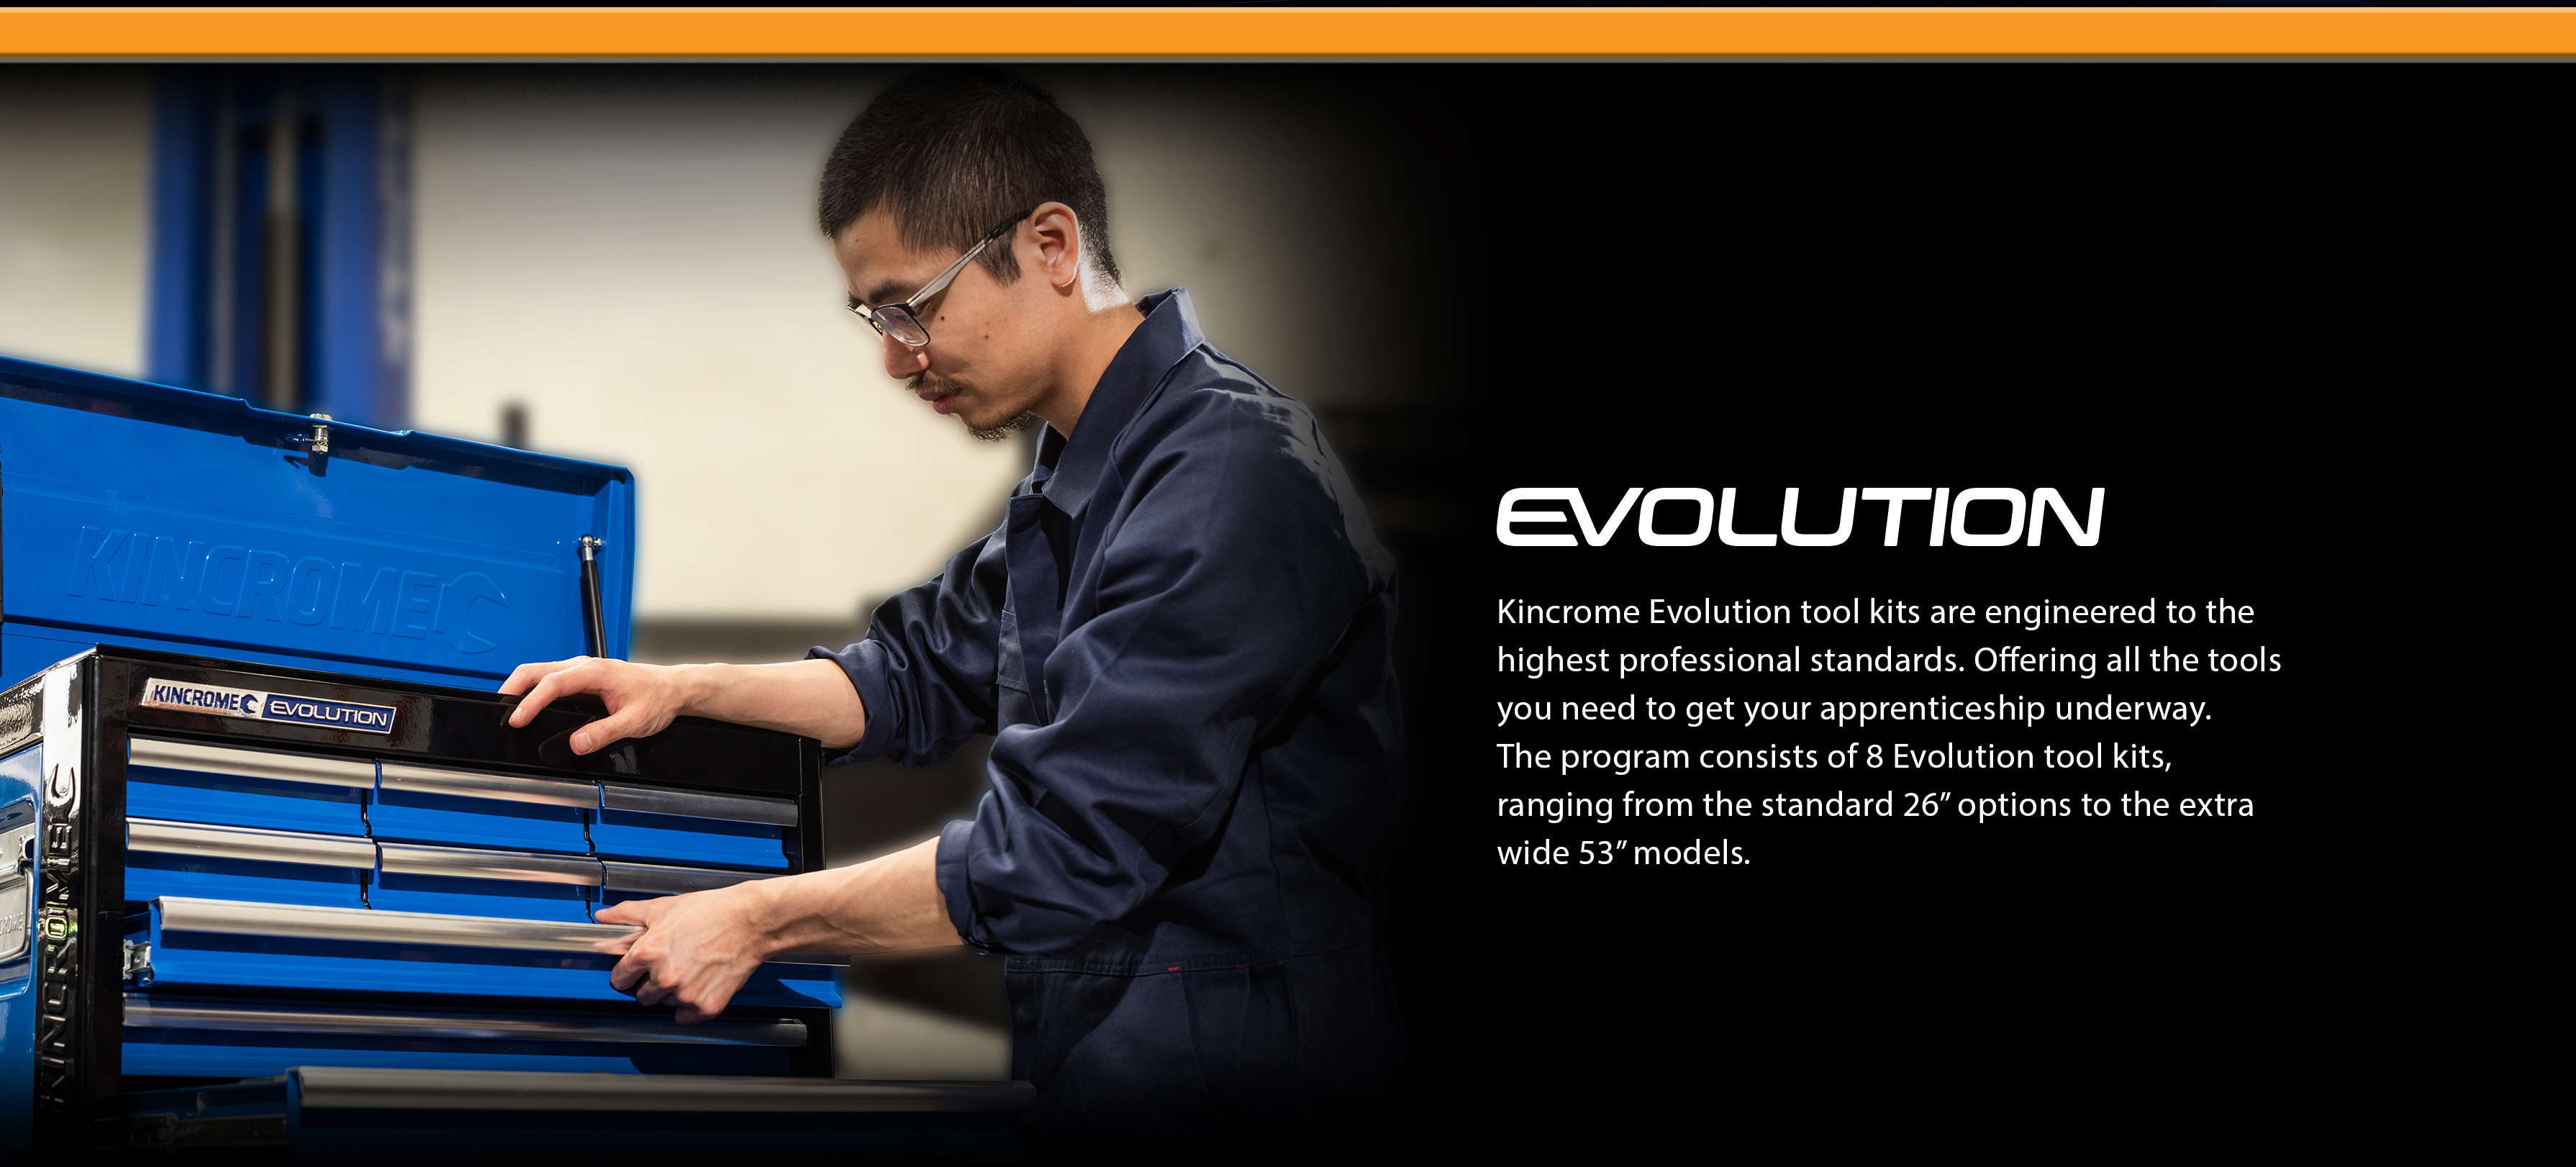 "Kincrome Evolution tool kits are engineered to the highest professional standards. Offering all the tools you need to get your apprenticeship underway. The program consists of 8 Evolution tool kits, ranging from the standard 26"" options to the extra wide 53"" models."